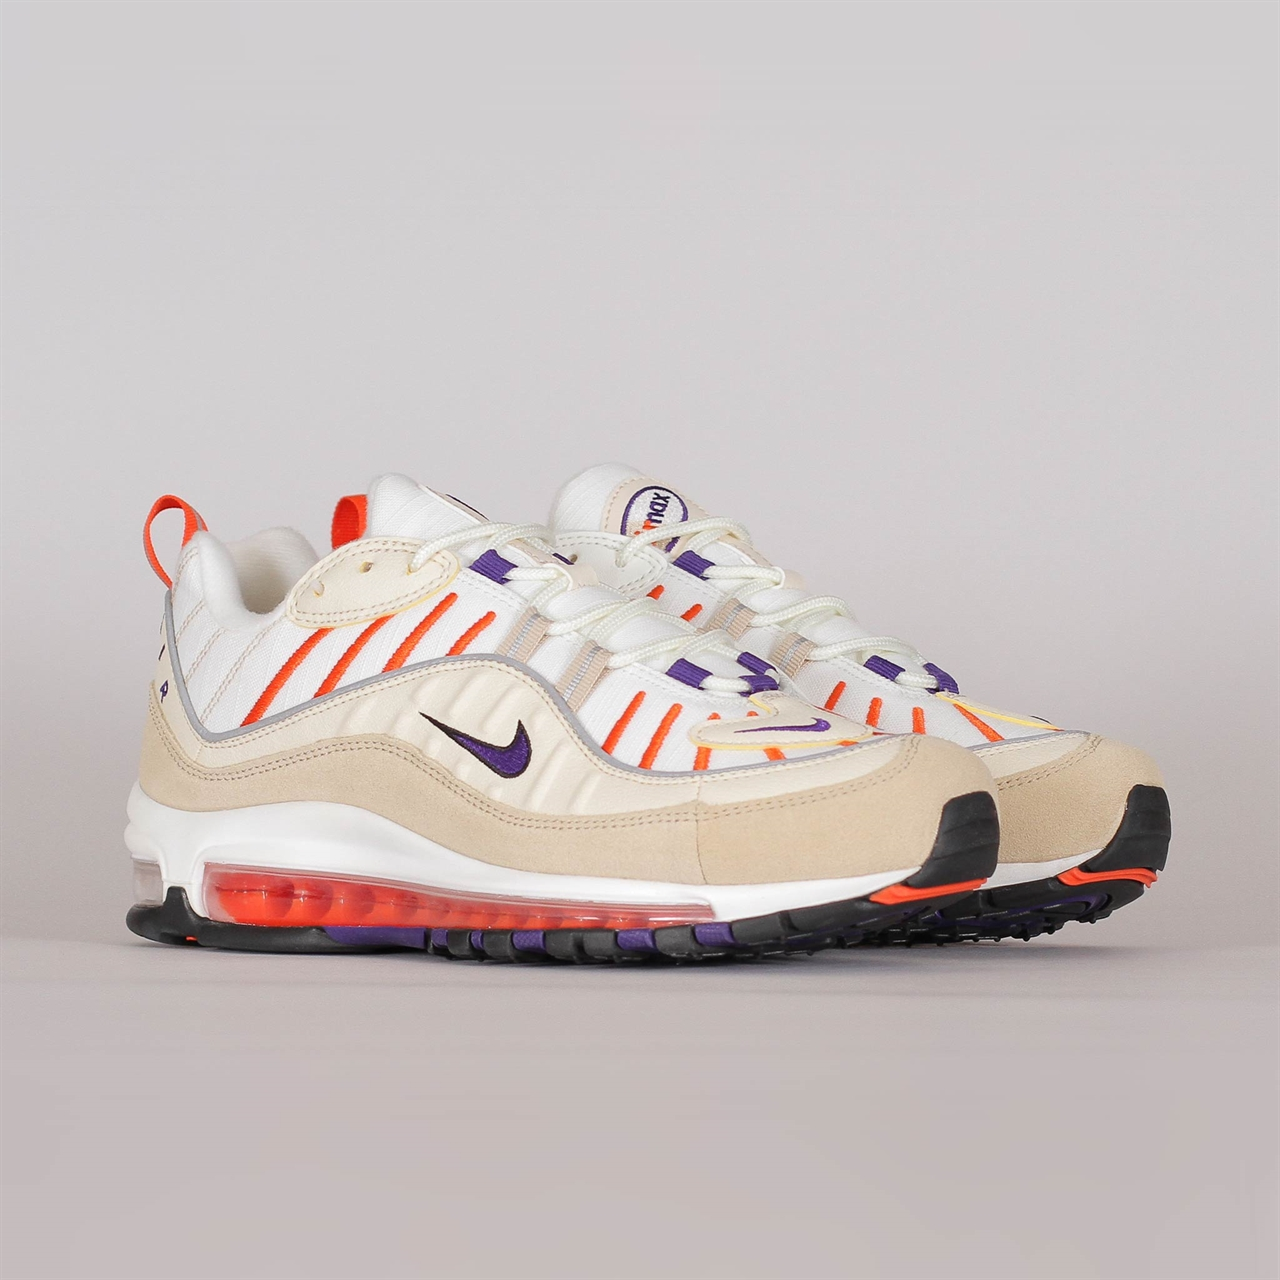 sports shoes 69472 28158 Shelta - Nike Air Max 98 (640744-108)